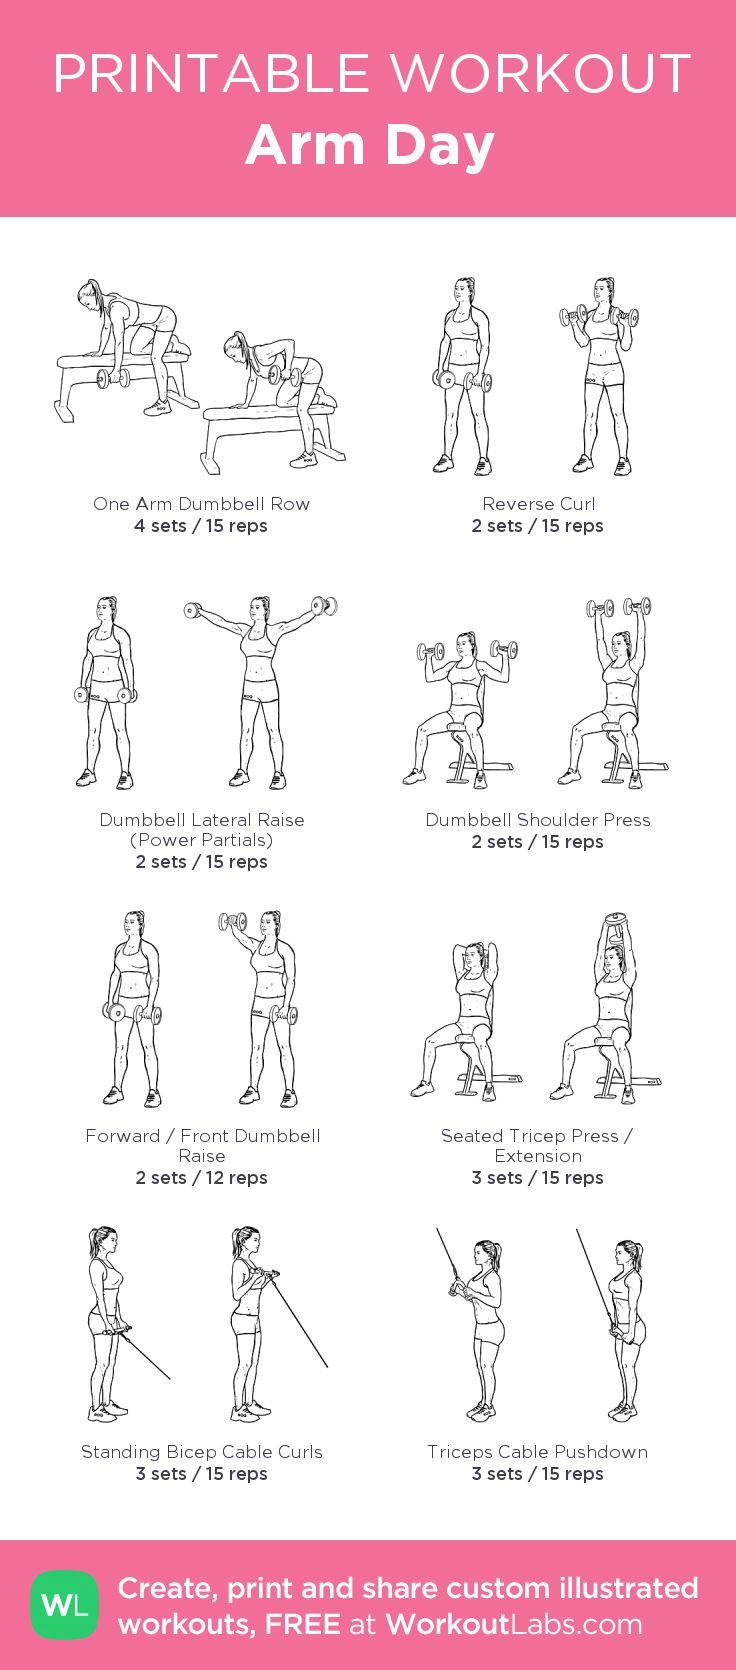 Arm Day: my custom printable workout by @WorkoutLabs  #aworkoutlabs #custom #printable #workout, #gymworkouts